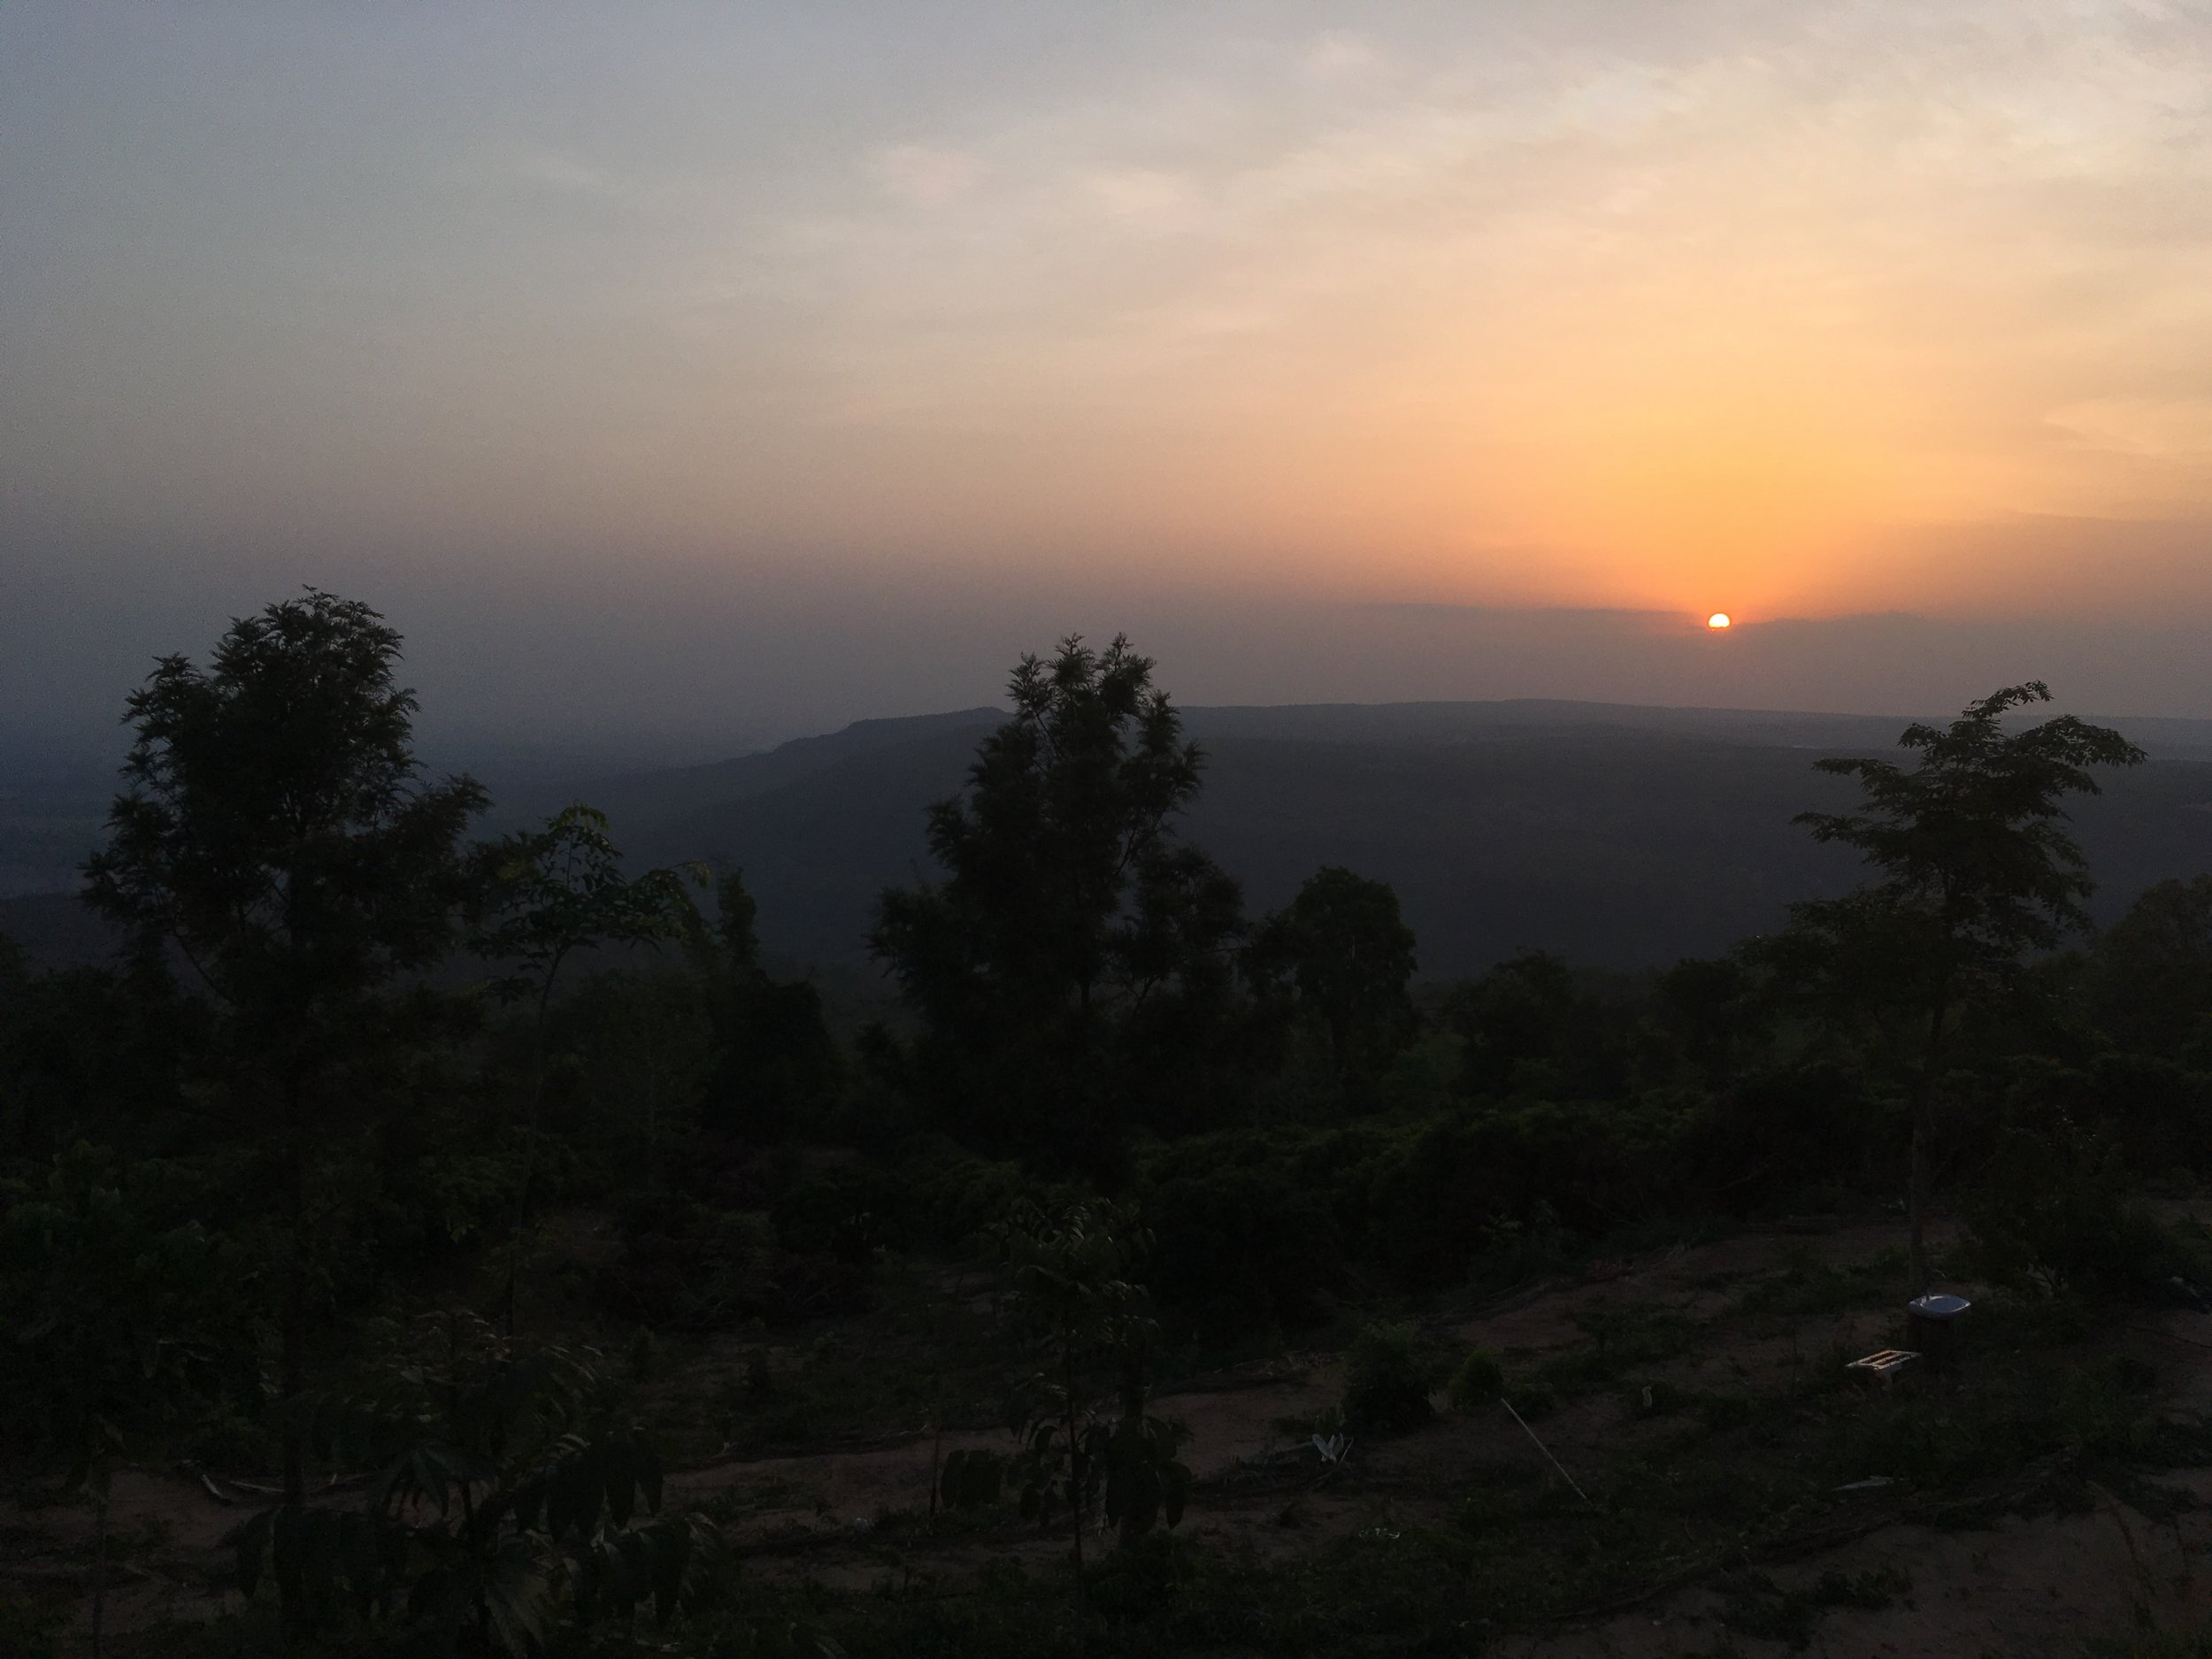 The sunset view